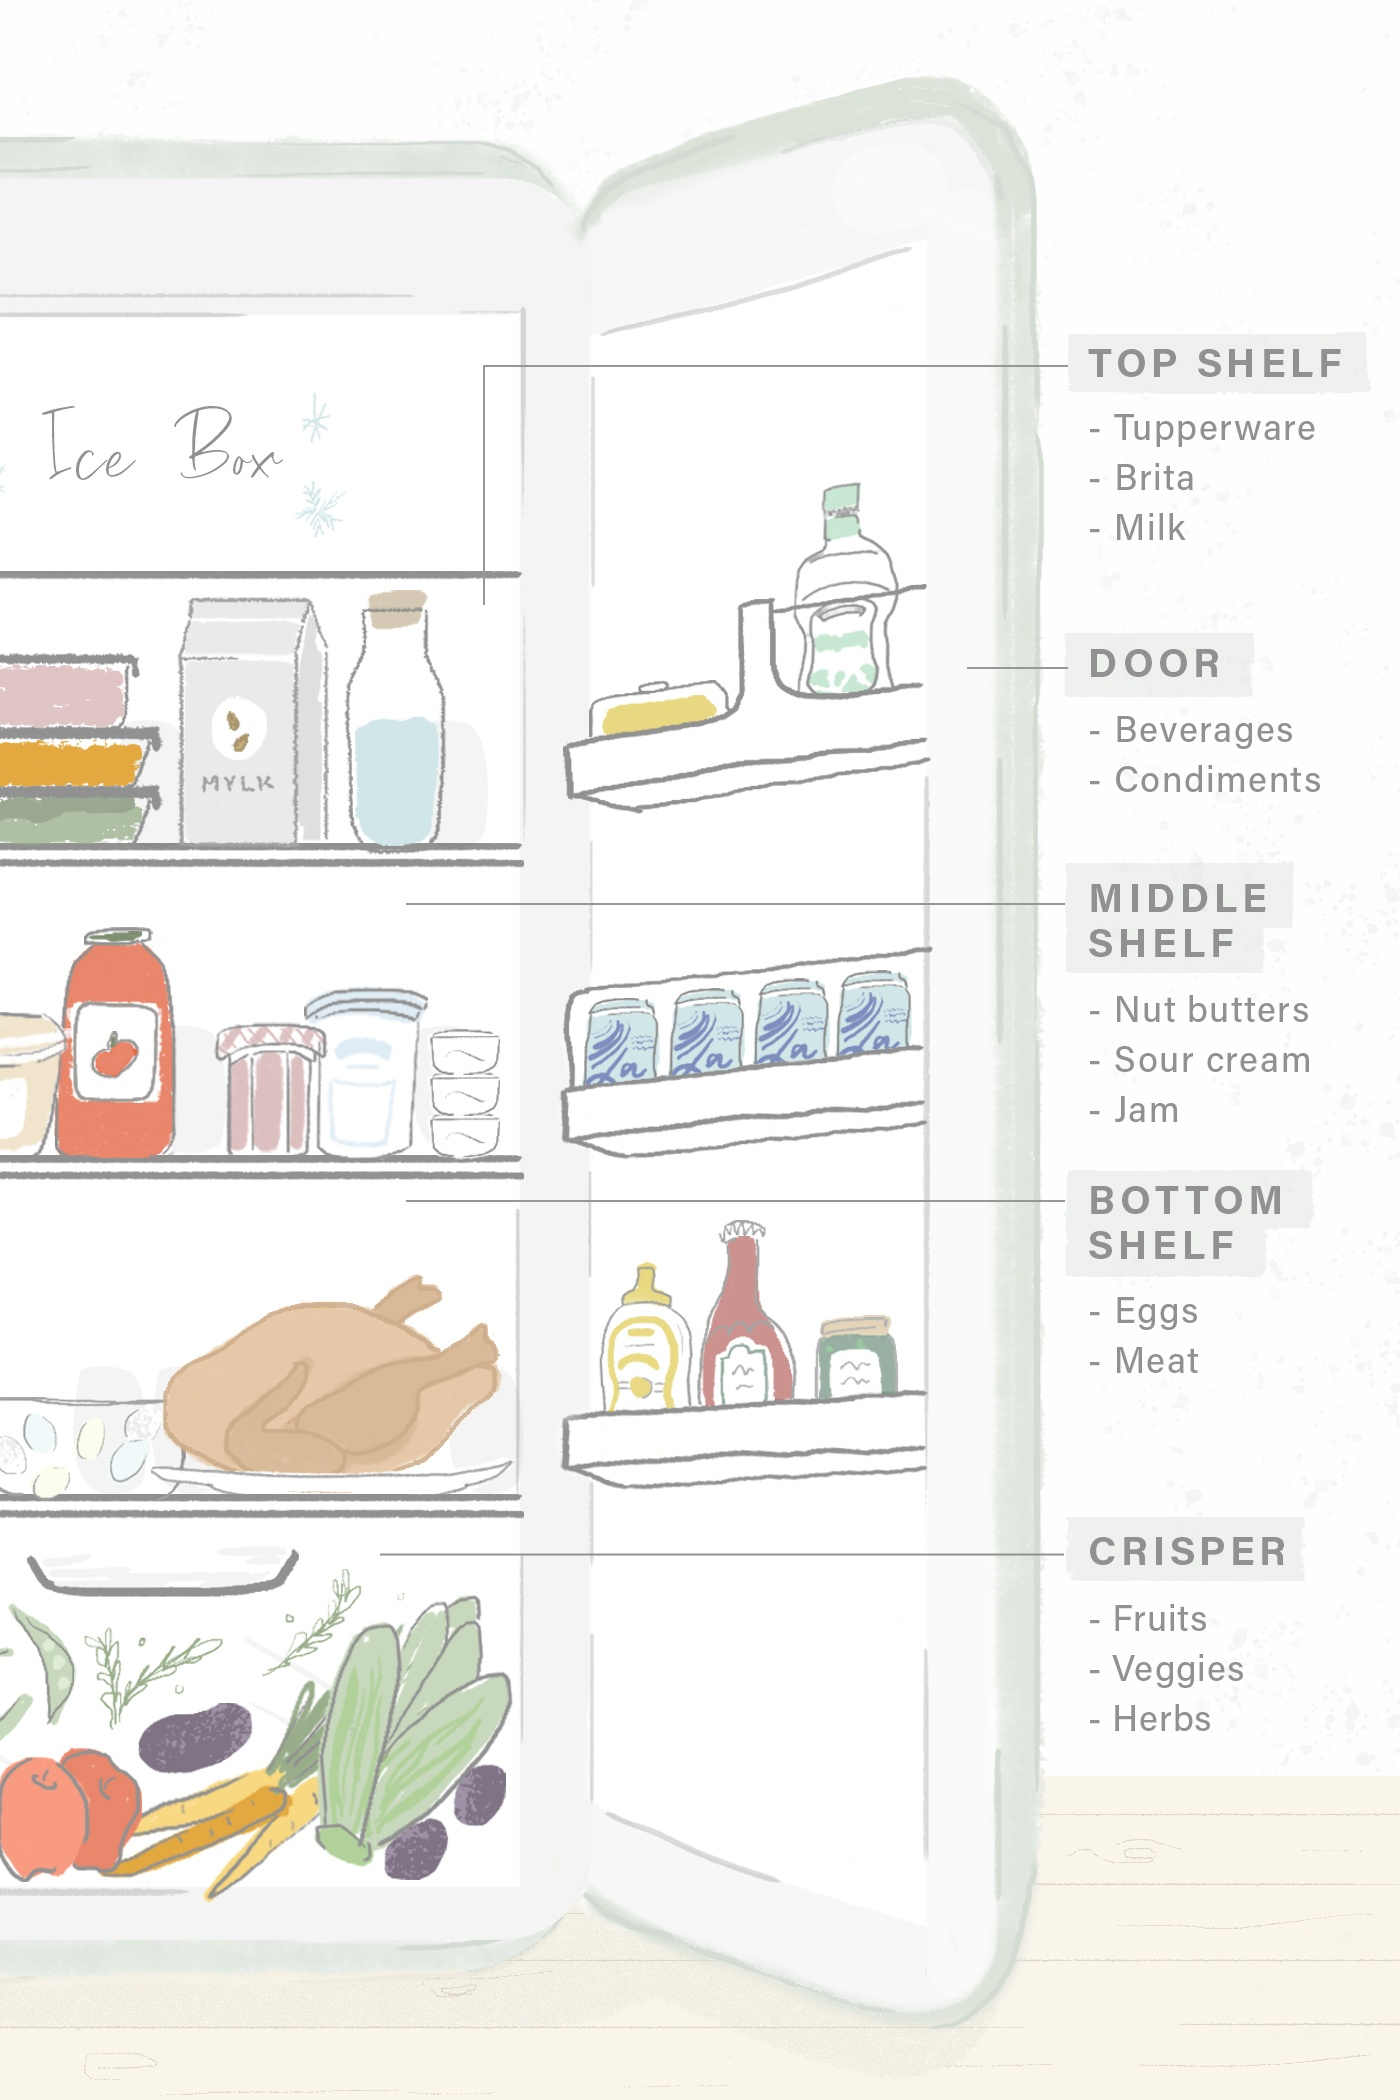 Thumbnail for Never forget about your leftovers again with these RD-approved fridge organization tips